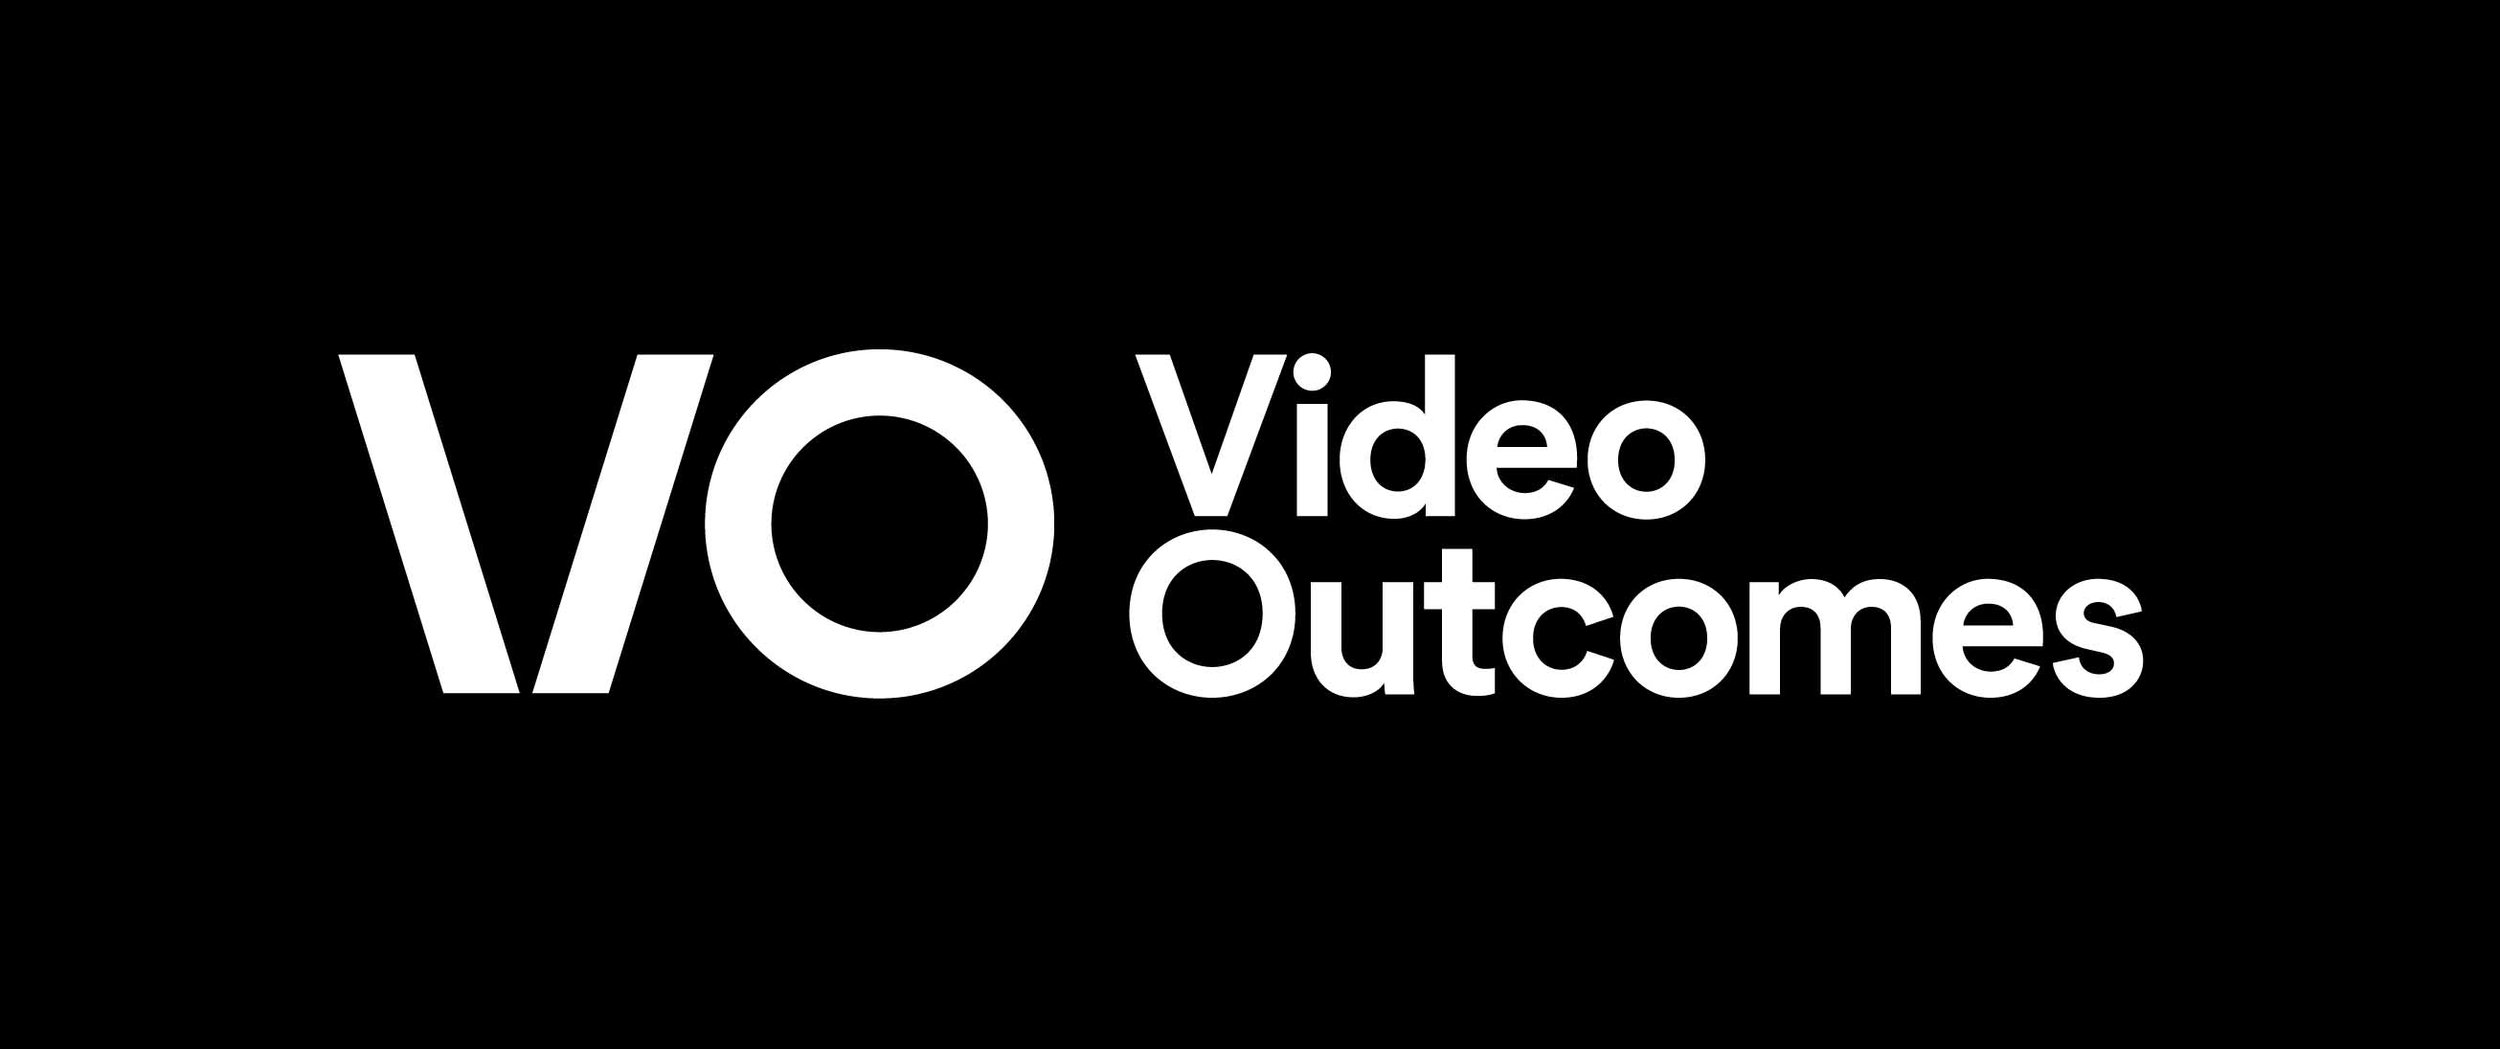 Video Outcomes_LOGO_.jpg